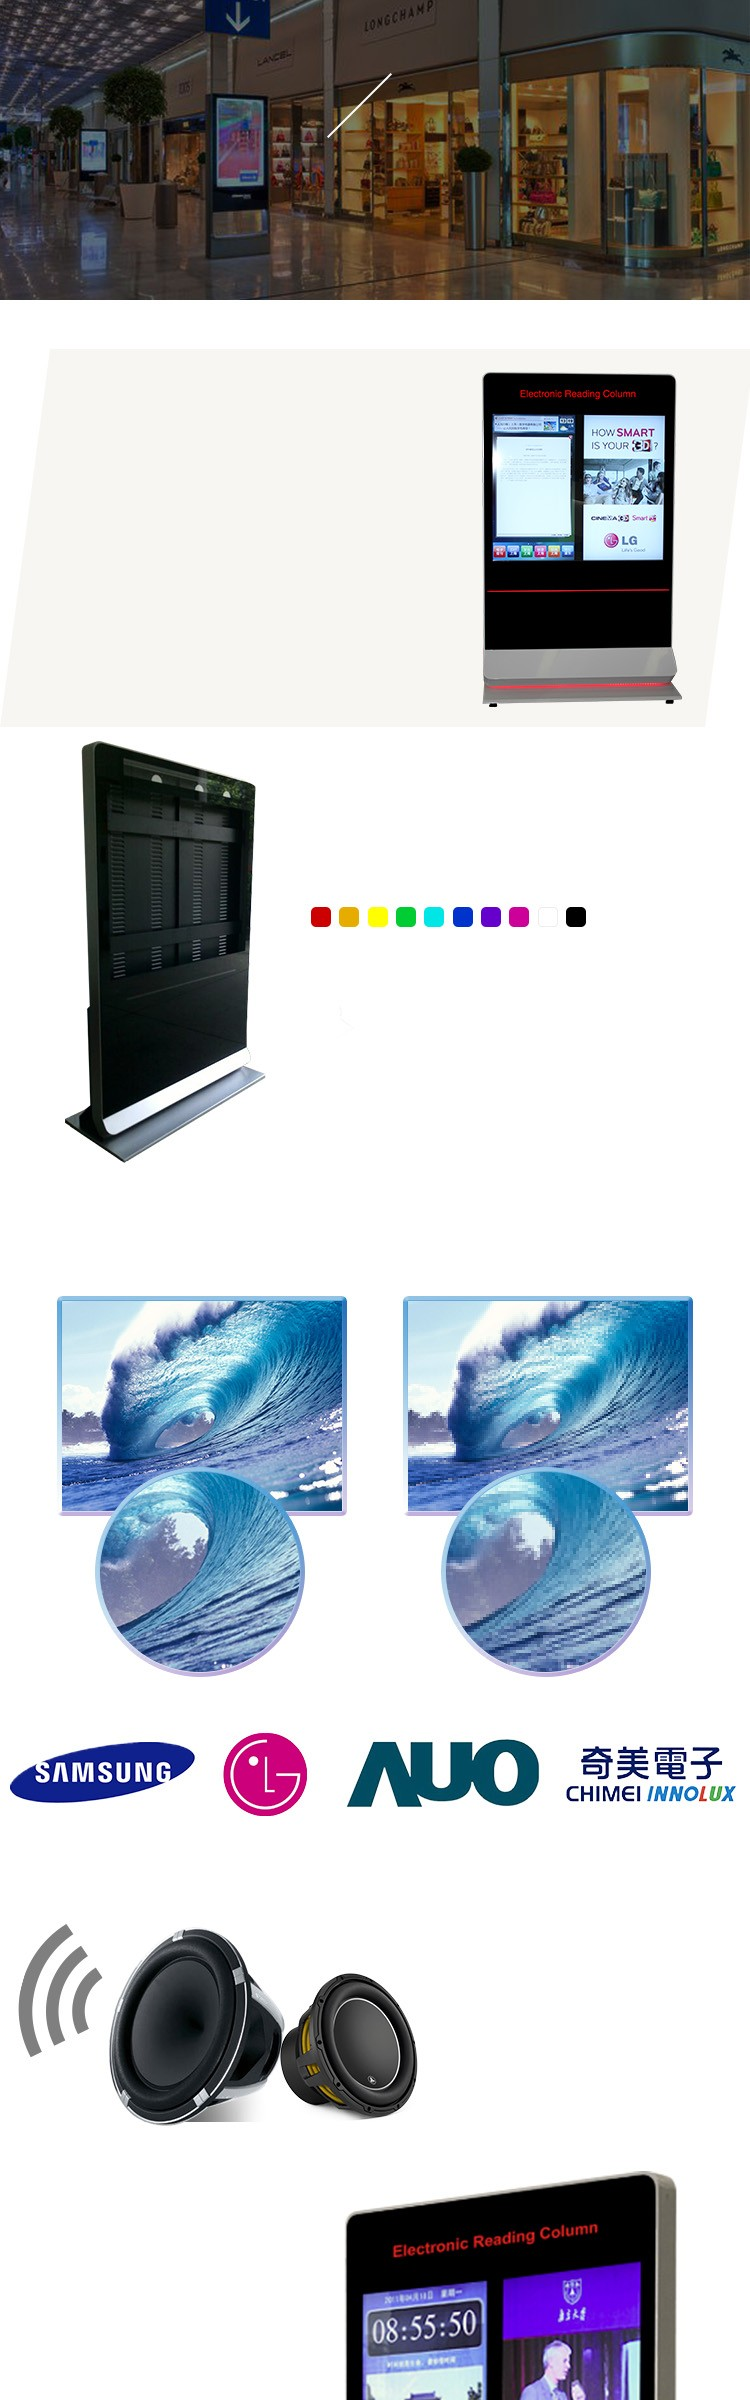 "43"" Dual Screen All in One PC Digital Signage Display Stands"